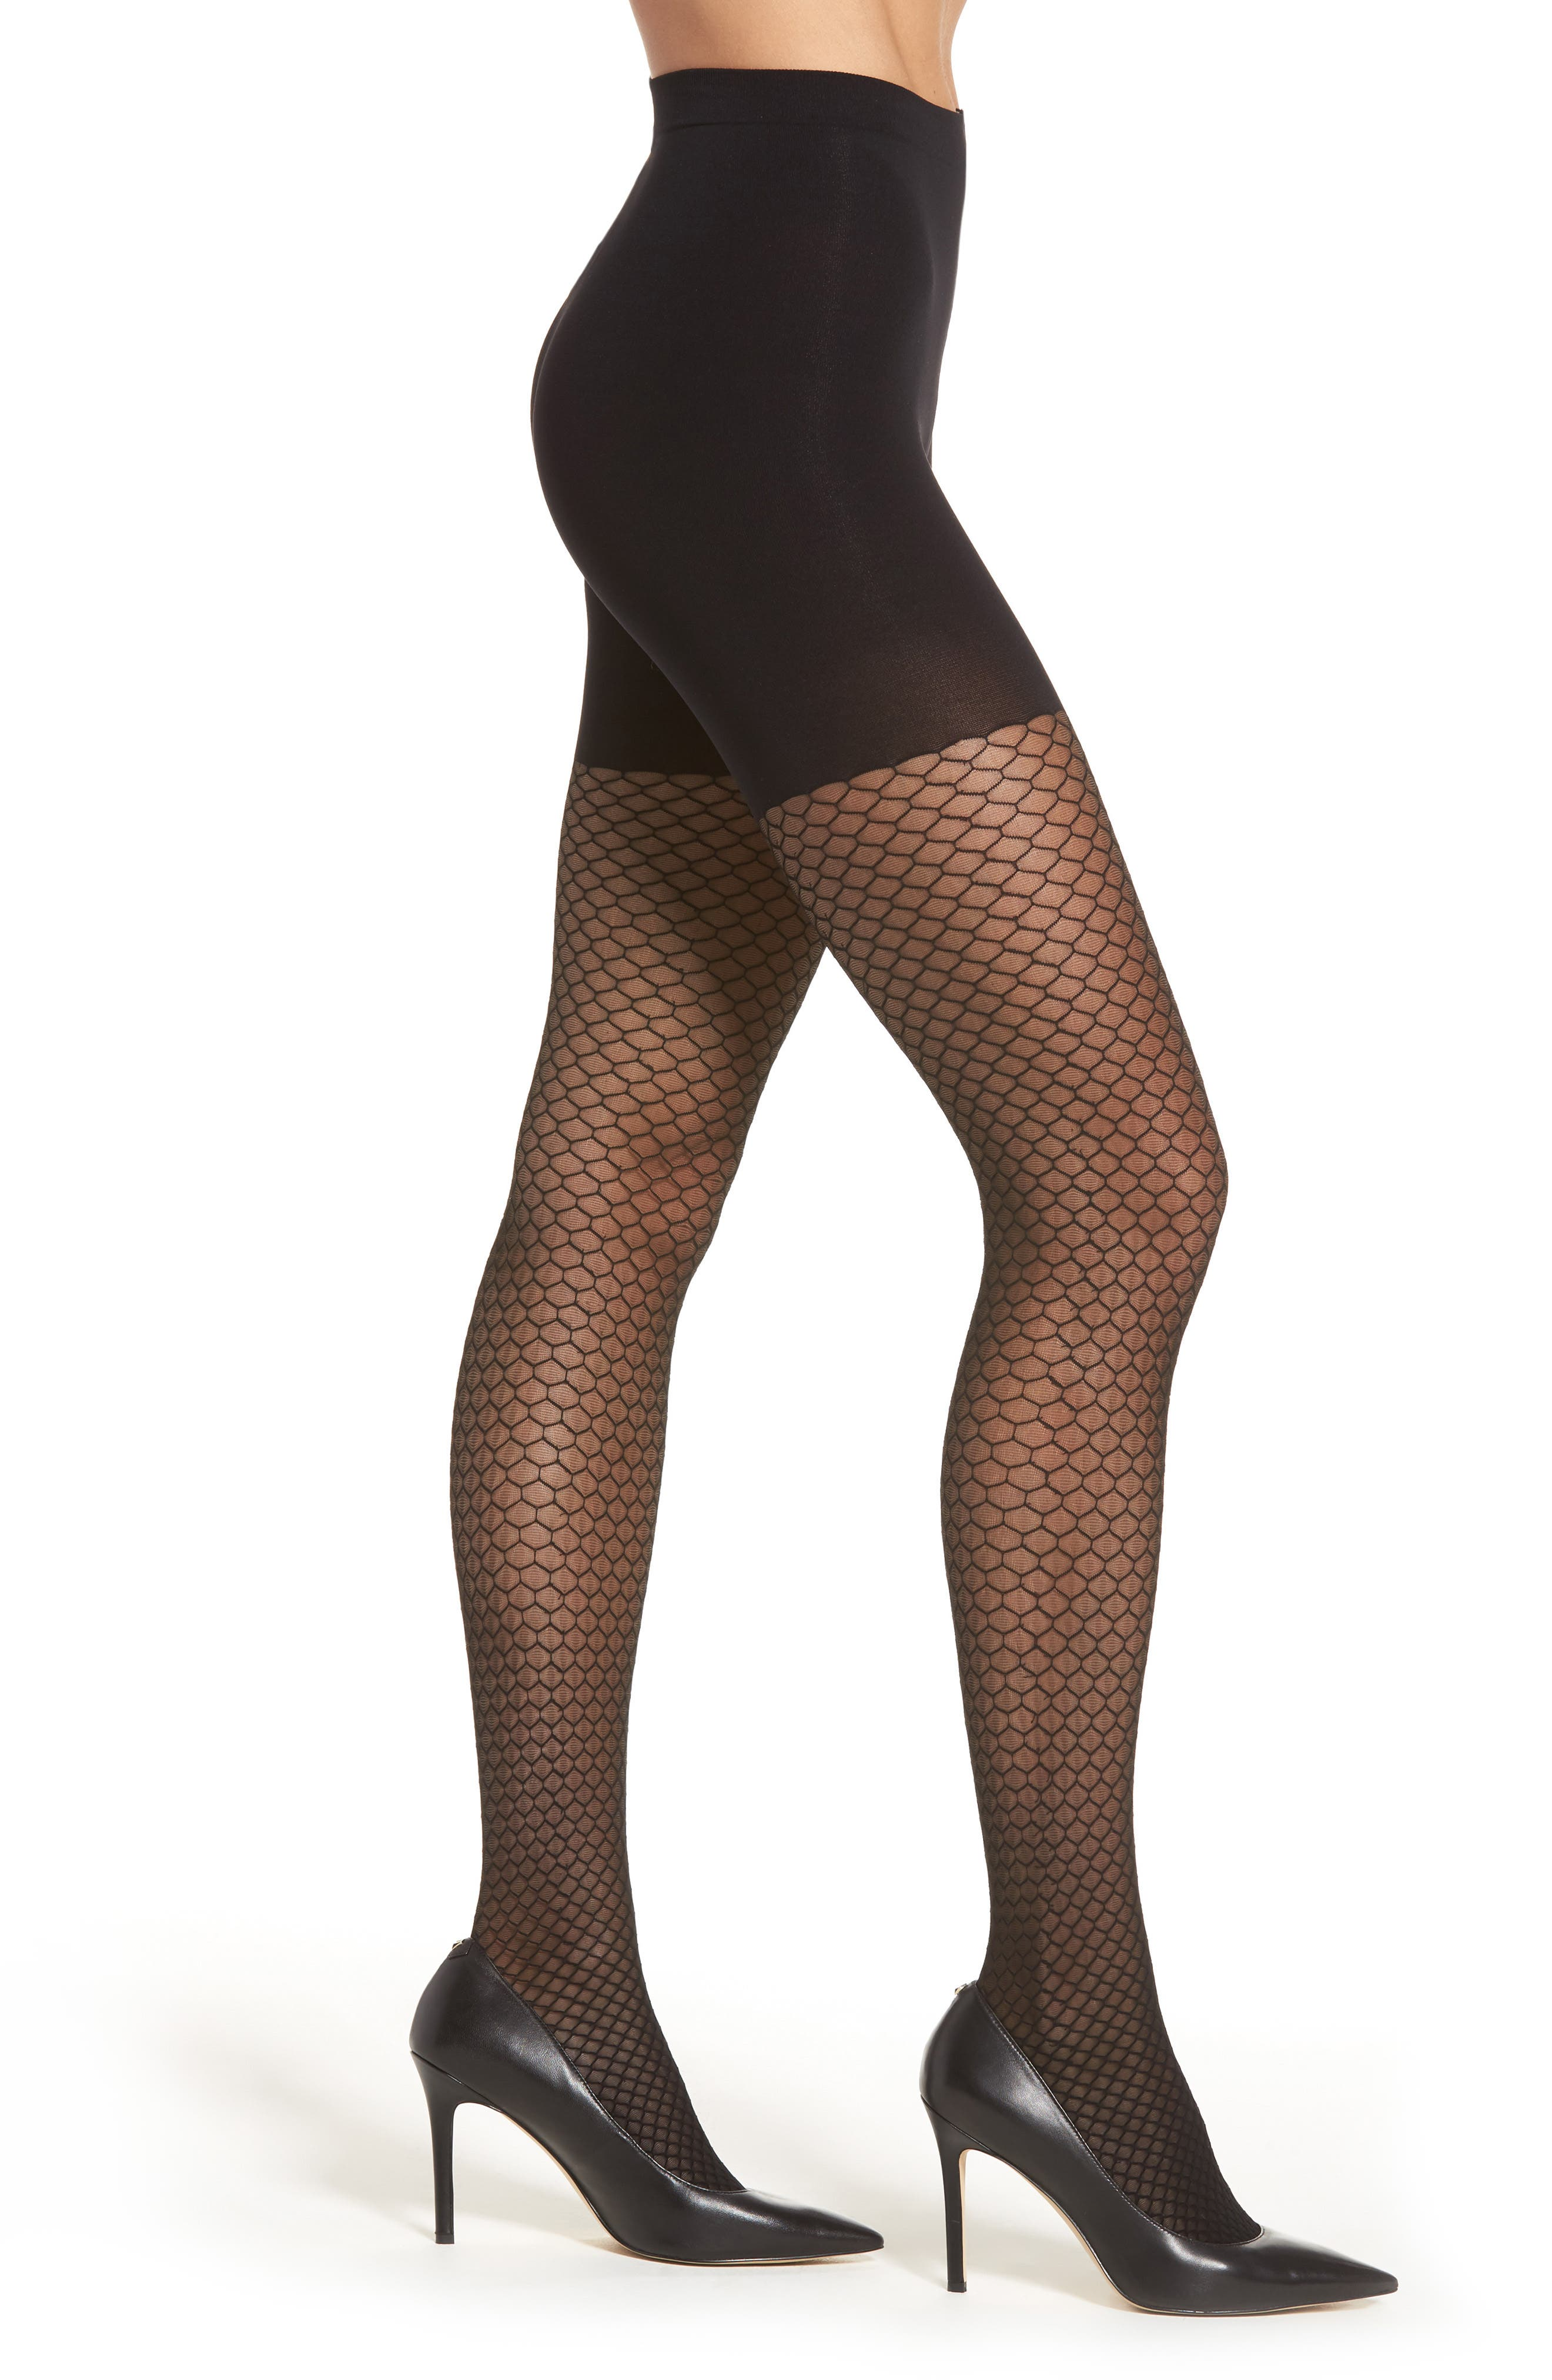 Alternate Image 1 Selected - SPANX® Honeycomb Shaper Tights